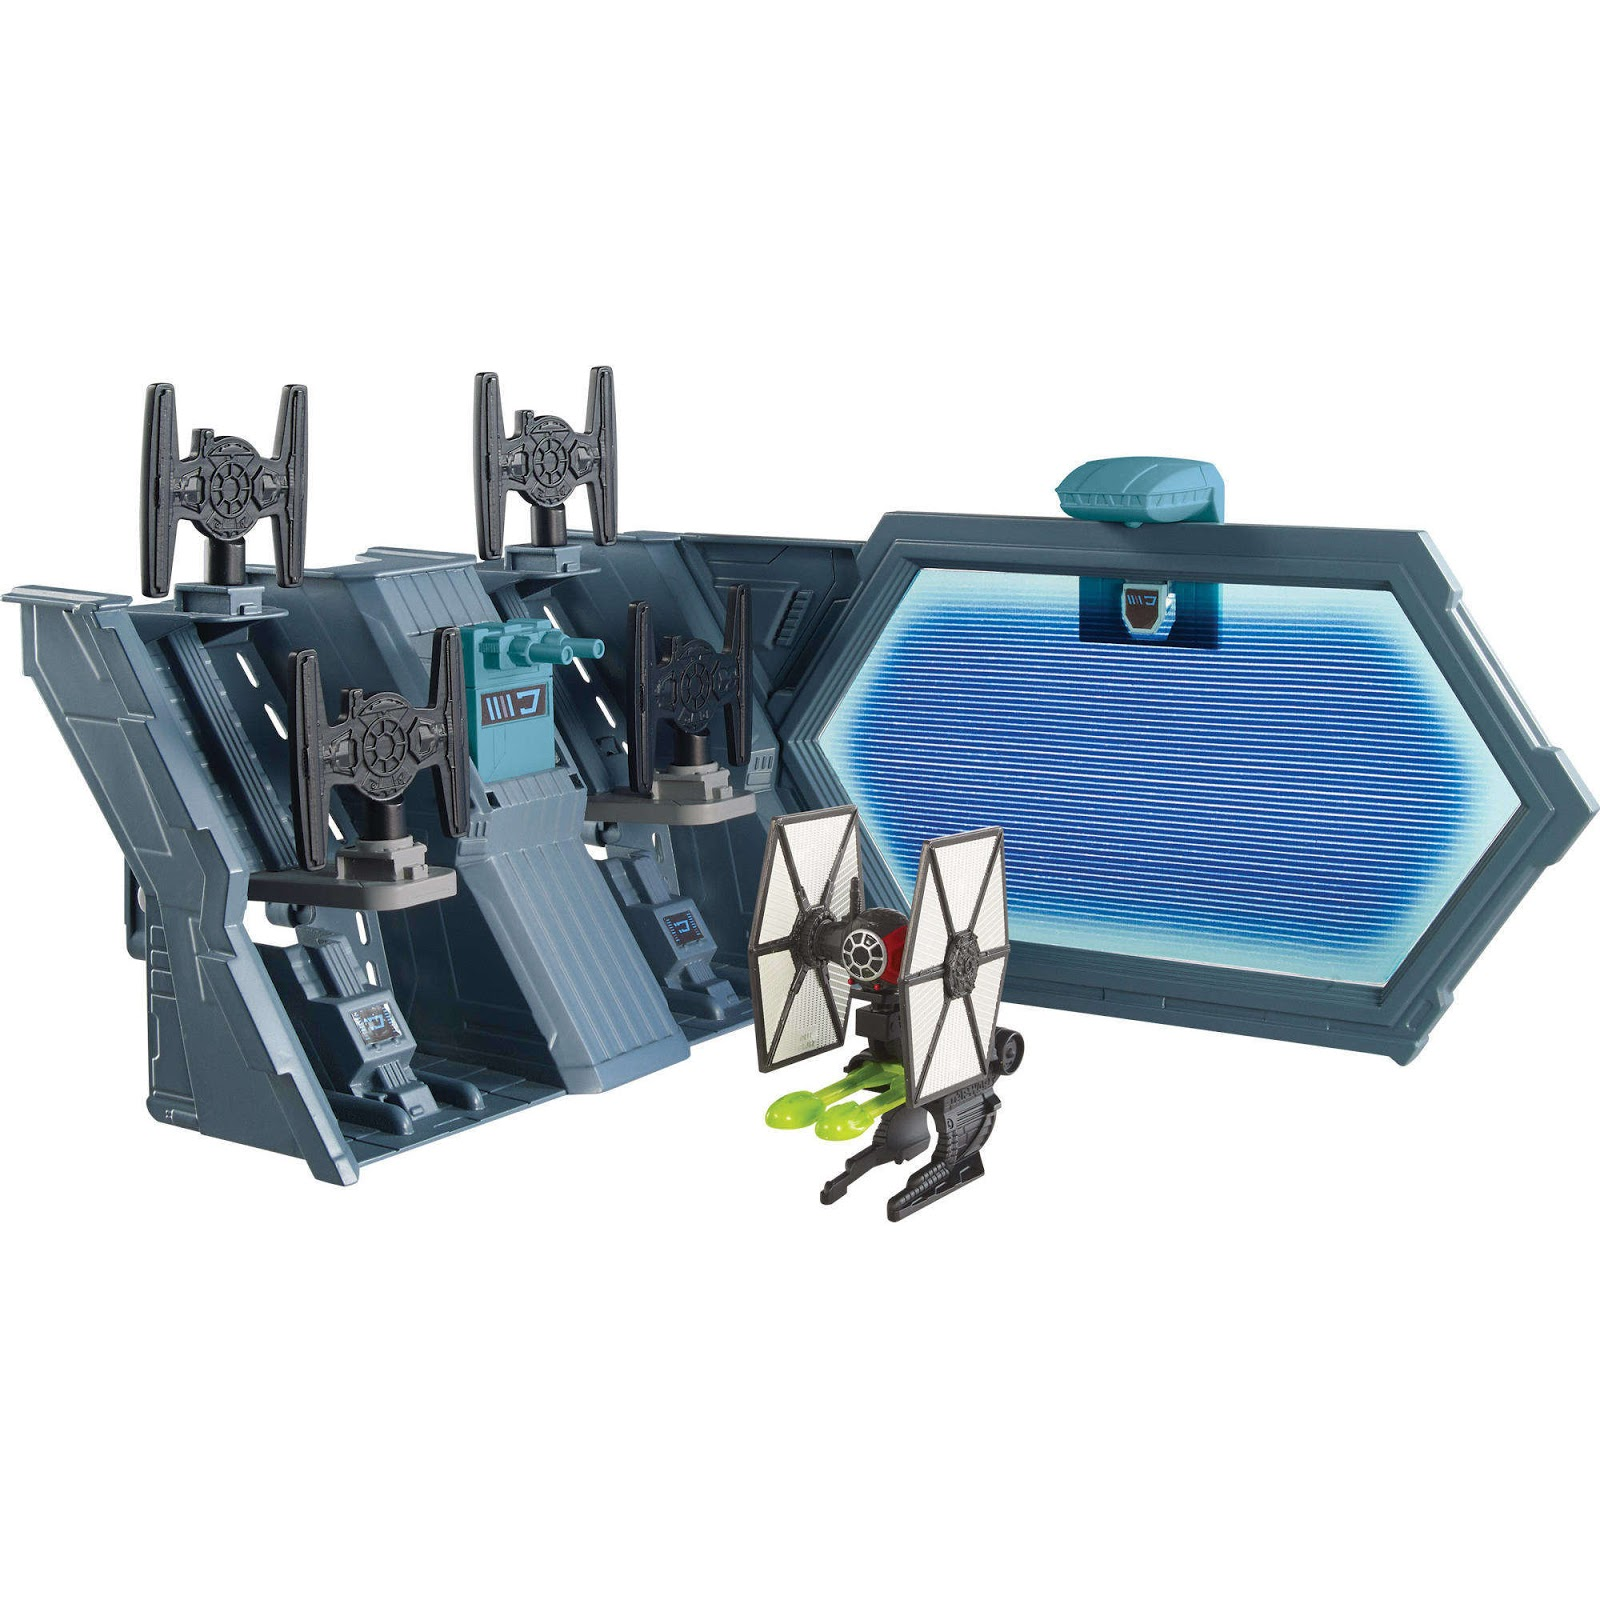 7267f6186c32 Walmart has the Hot Wheels Star Wars Starship TIE Fighter on sale for $9.51  (regularly $14.97).